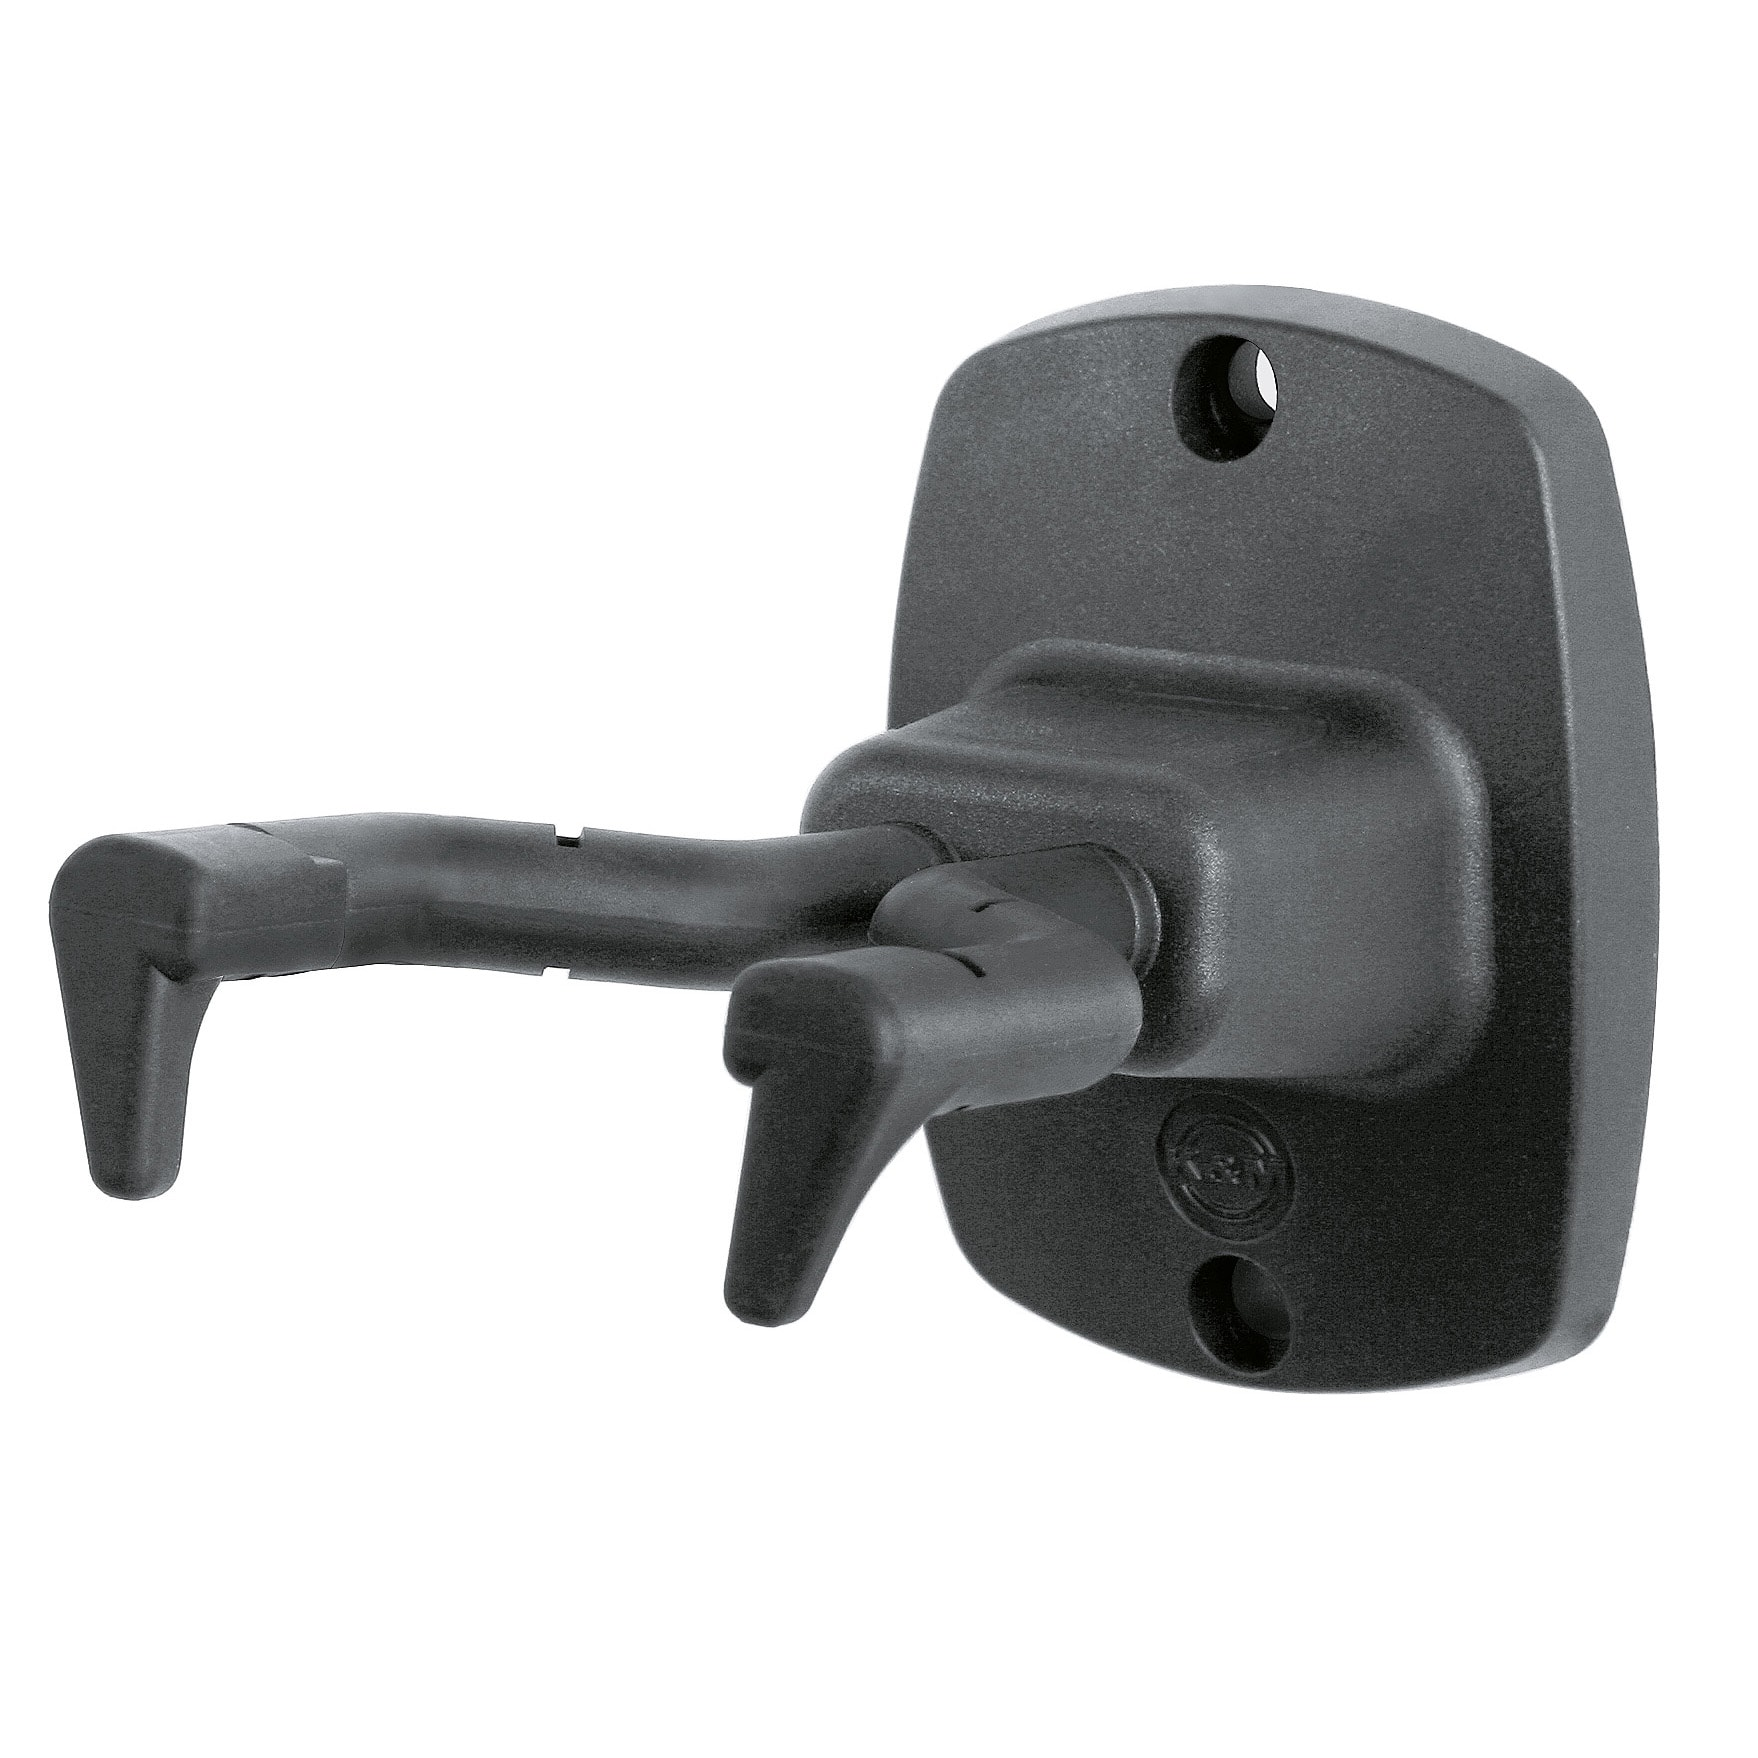 KM16240 - Guitar wall mount